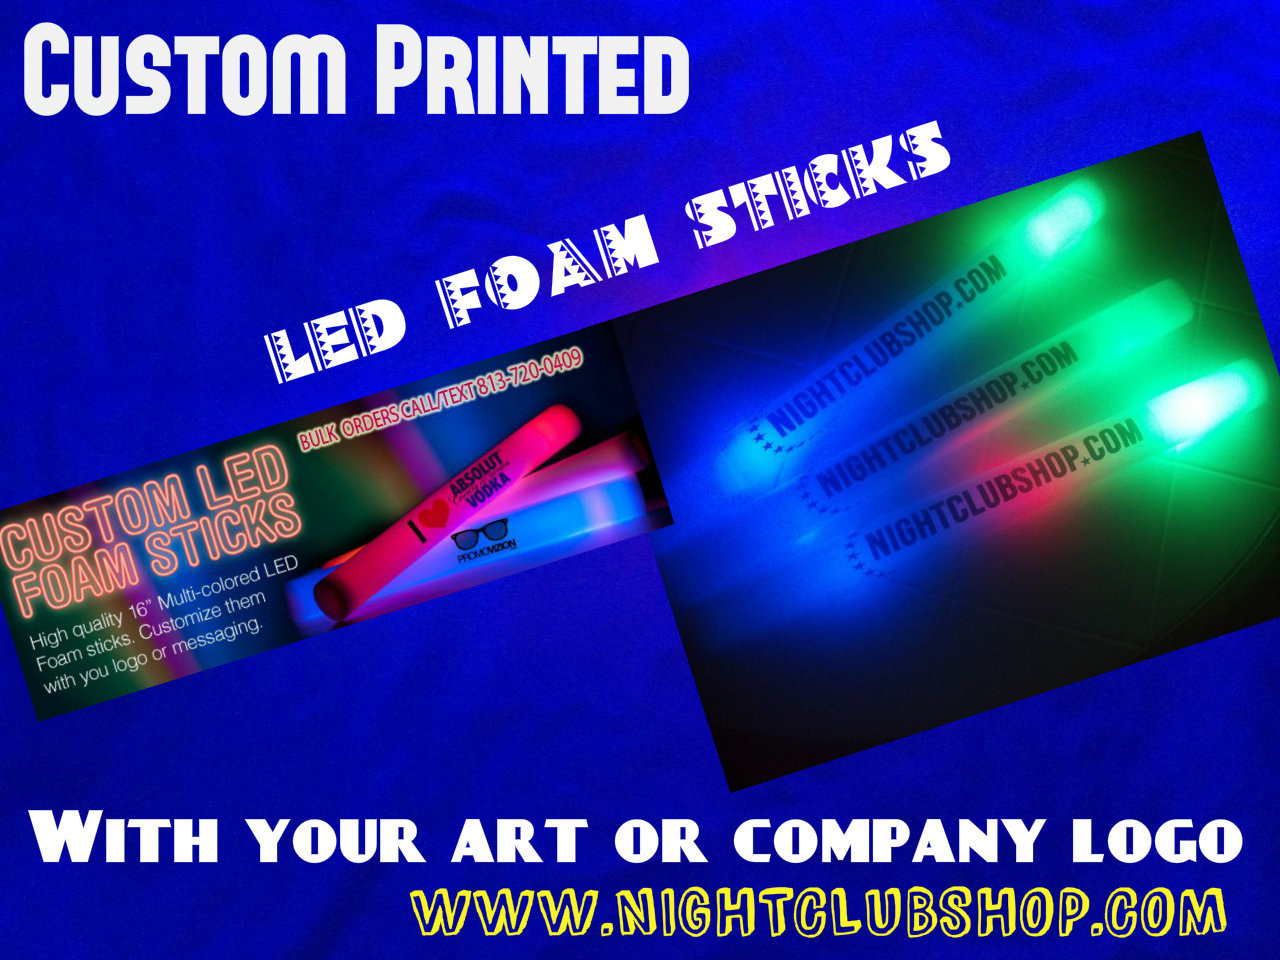 wedding-16 inch-foam-stick-foamstick-bulk-wholesale-nightclub-event-supplier-supplies-edm-festival-rave-venue,Free ,Color ,Print, dual side,Customized,Printed, Personalized,Wedding, Glow, Foam, stick,baton, lumiton,wand, blinky,light,glowing, customized, glowstick, reception, bride, groom,name, text,logo,weddings, party favor, hora loca